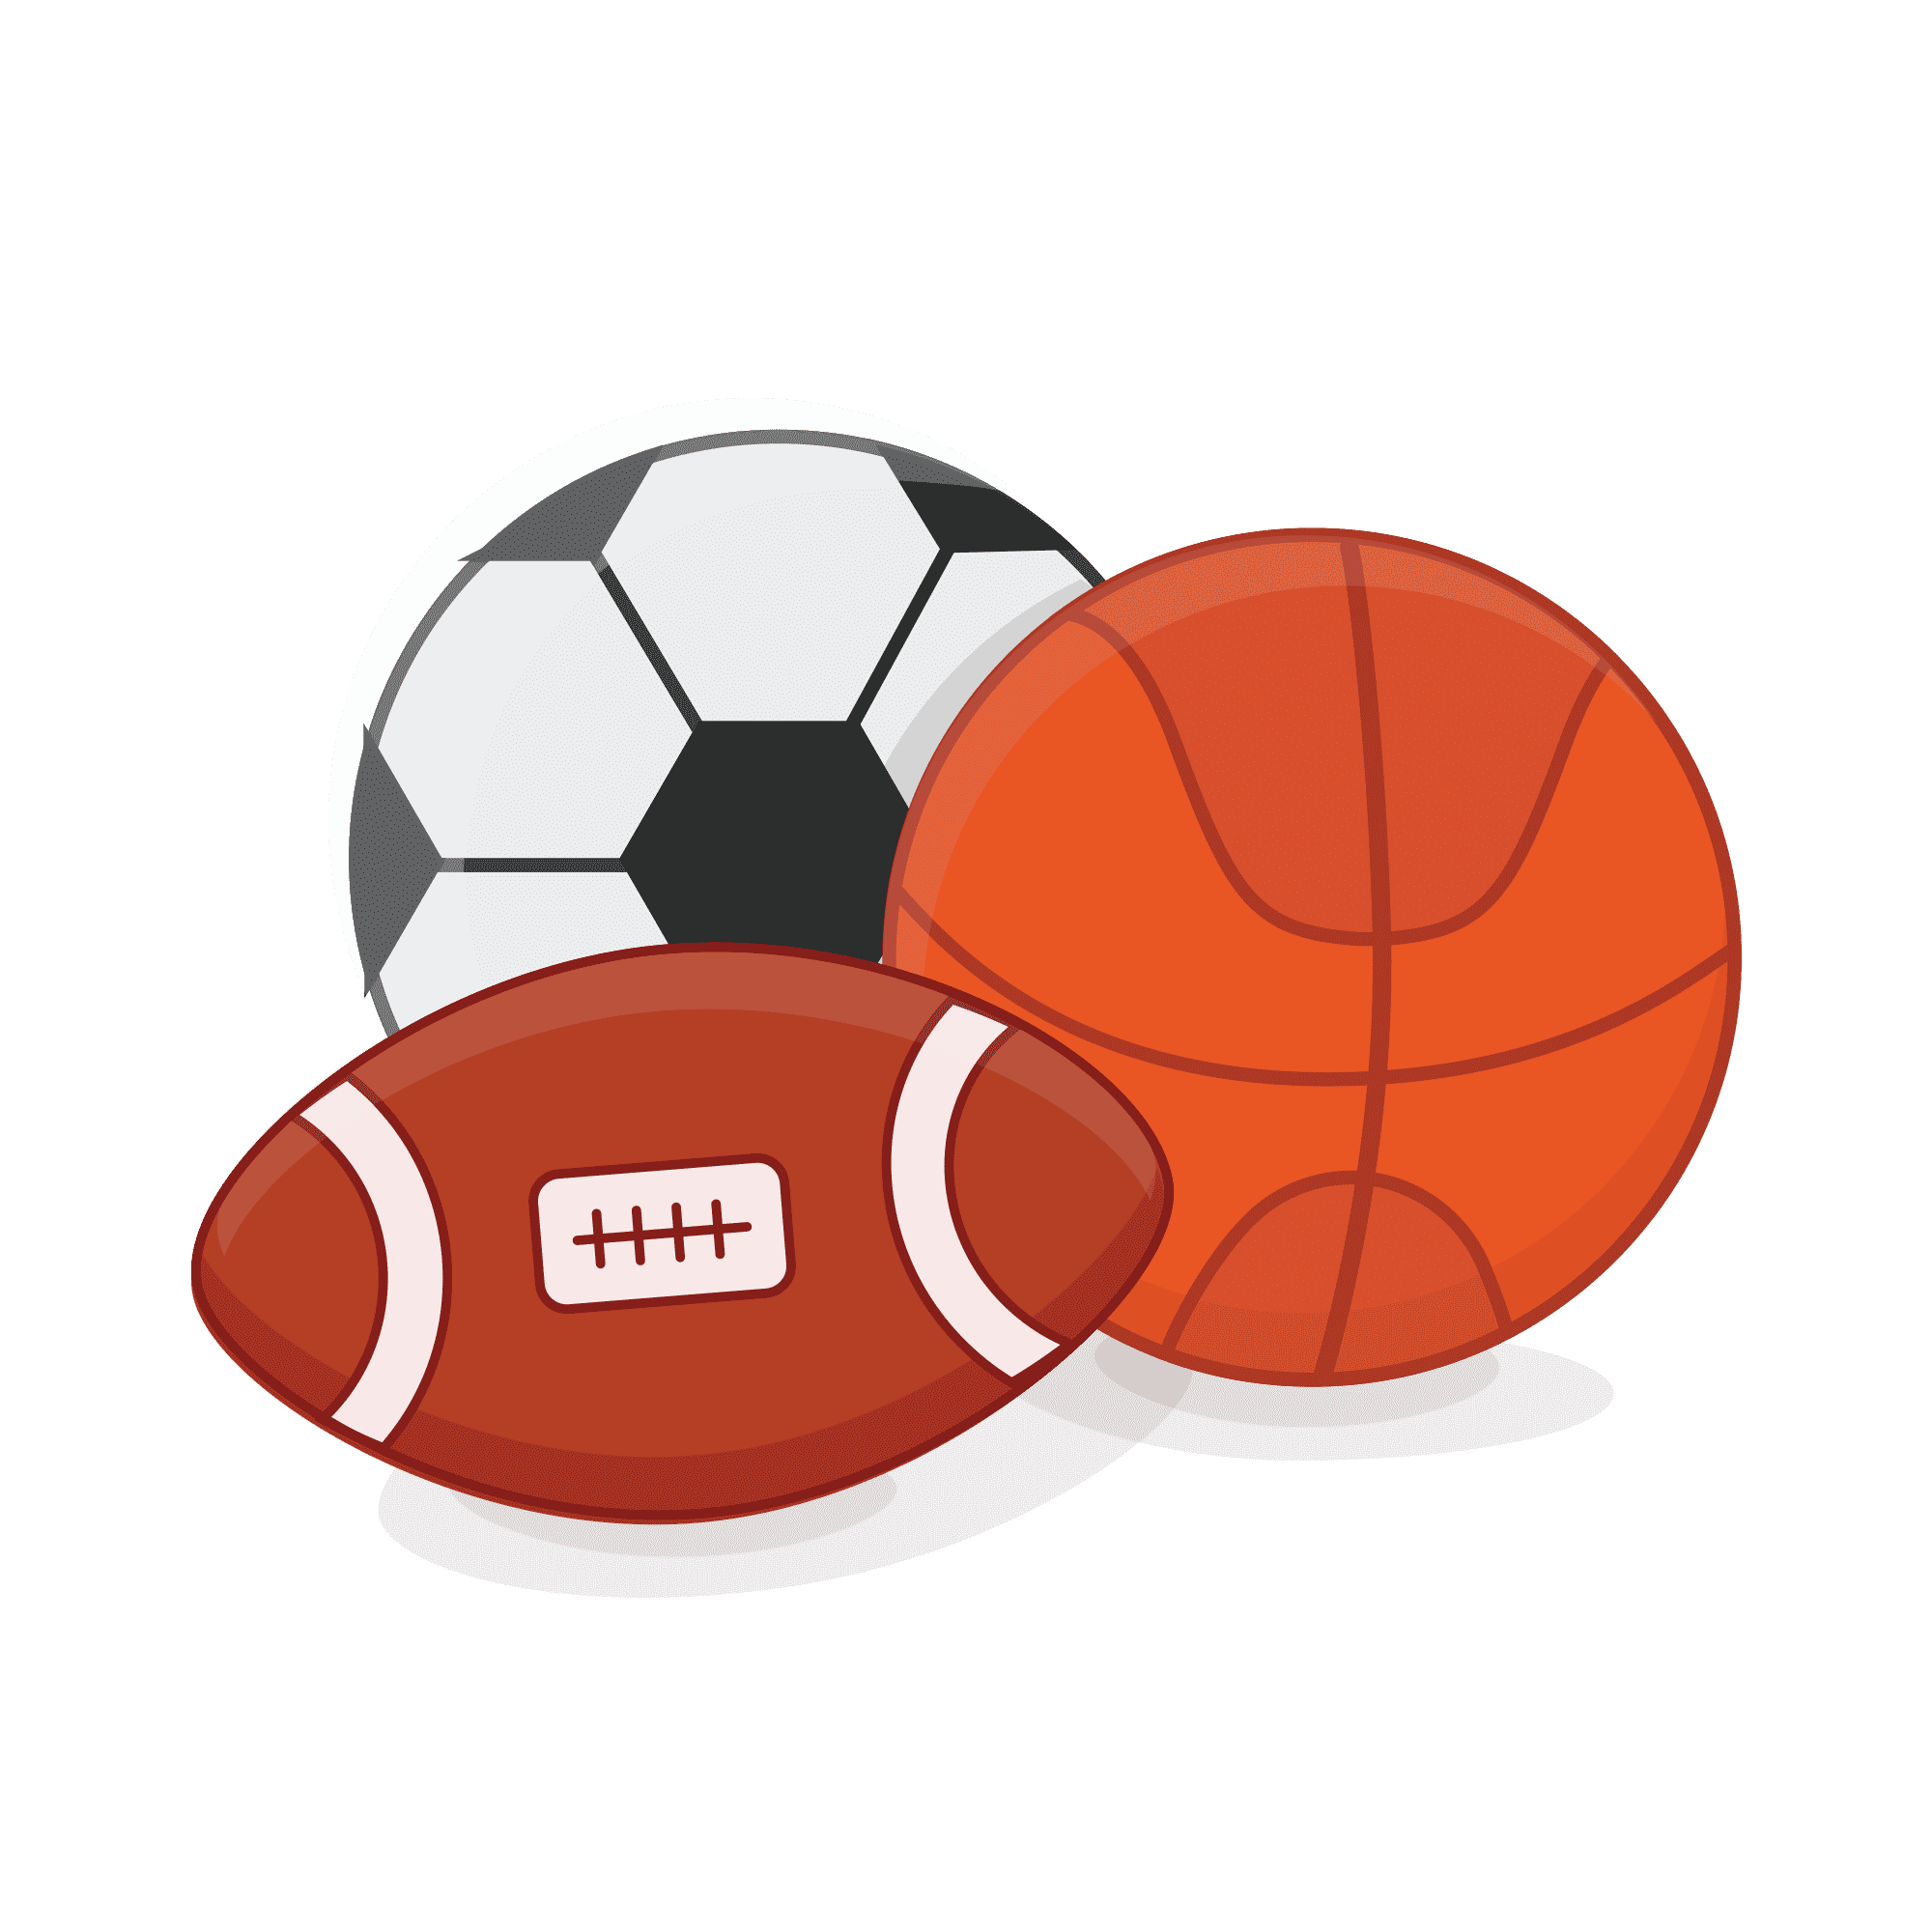 llustration of soccer ball, basketball and football